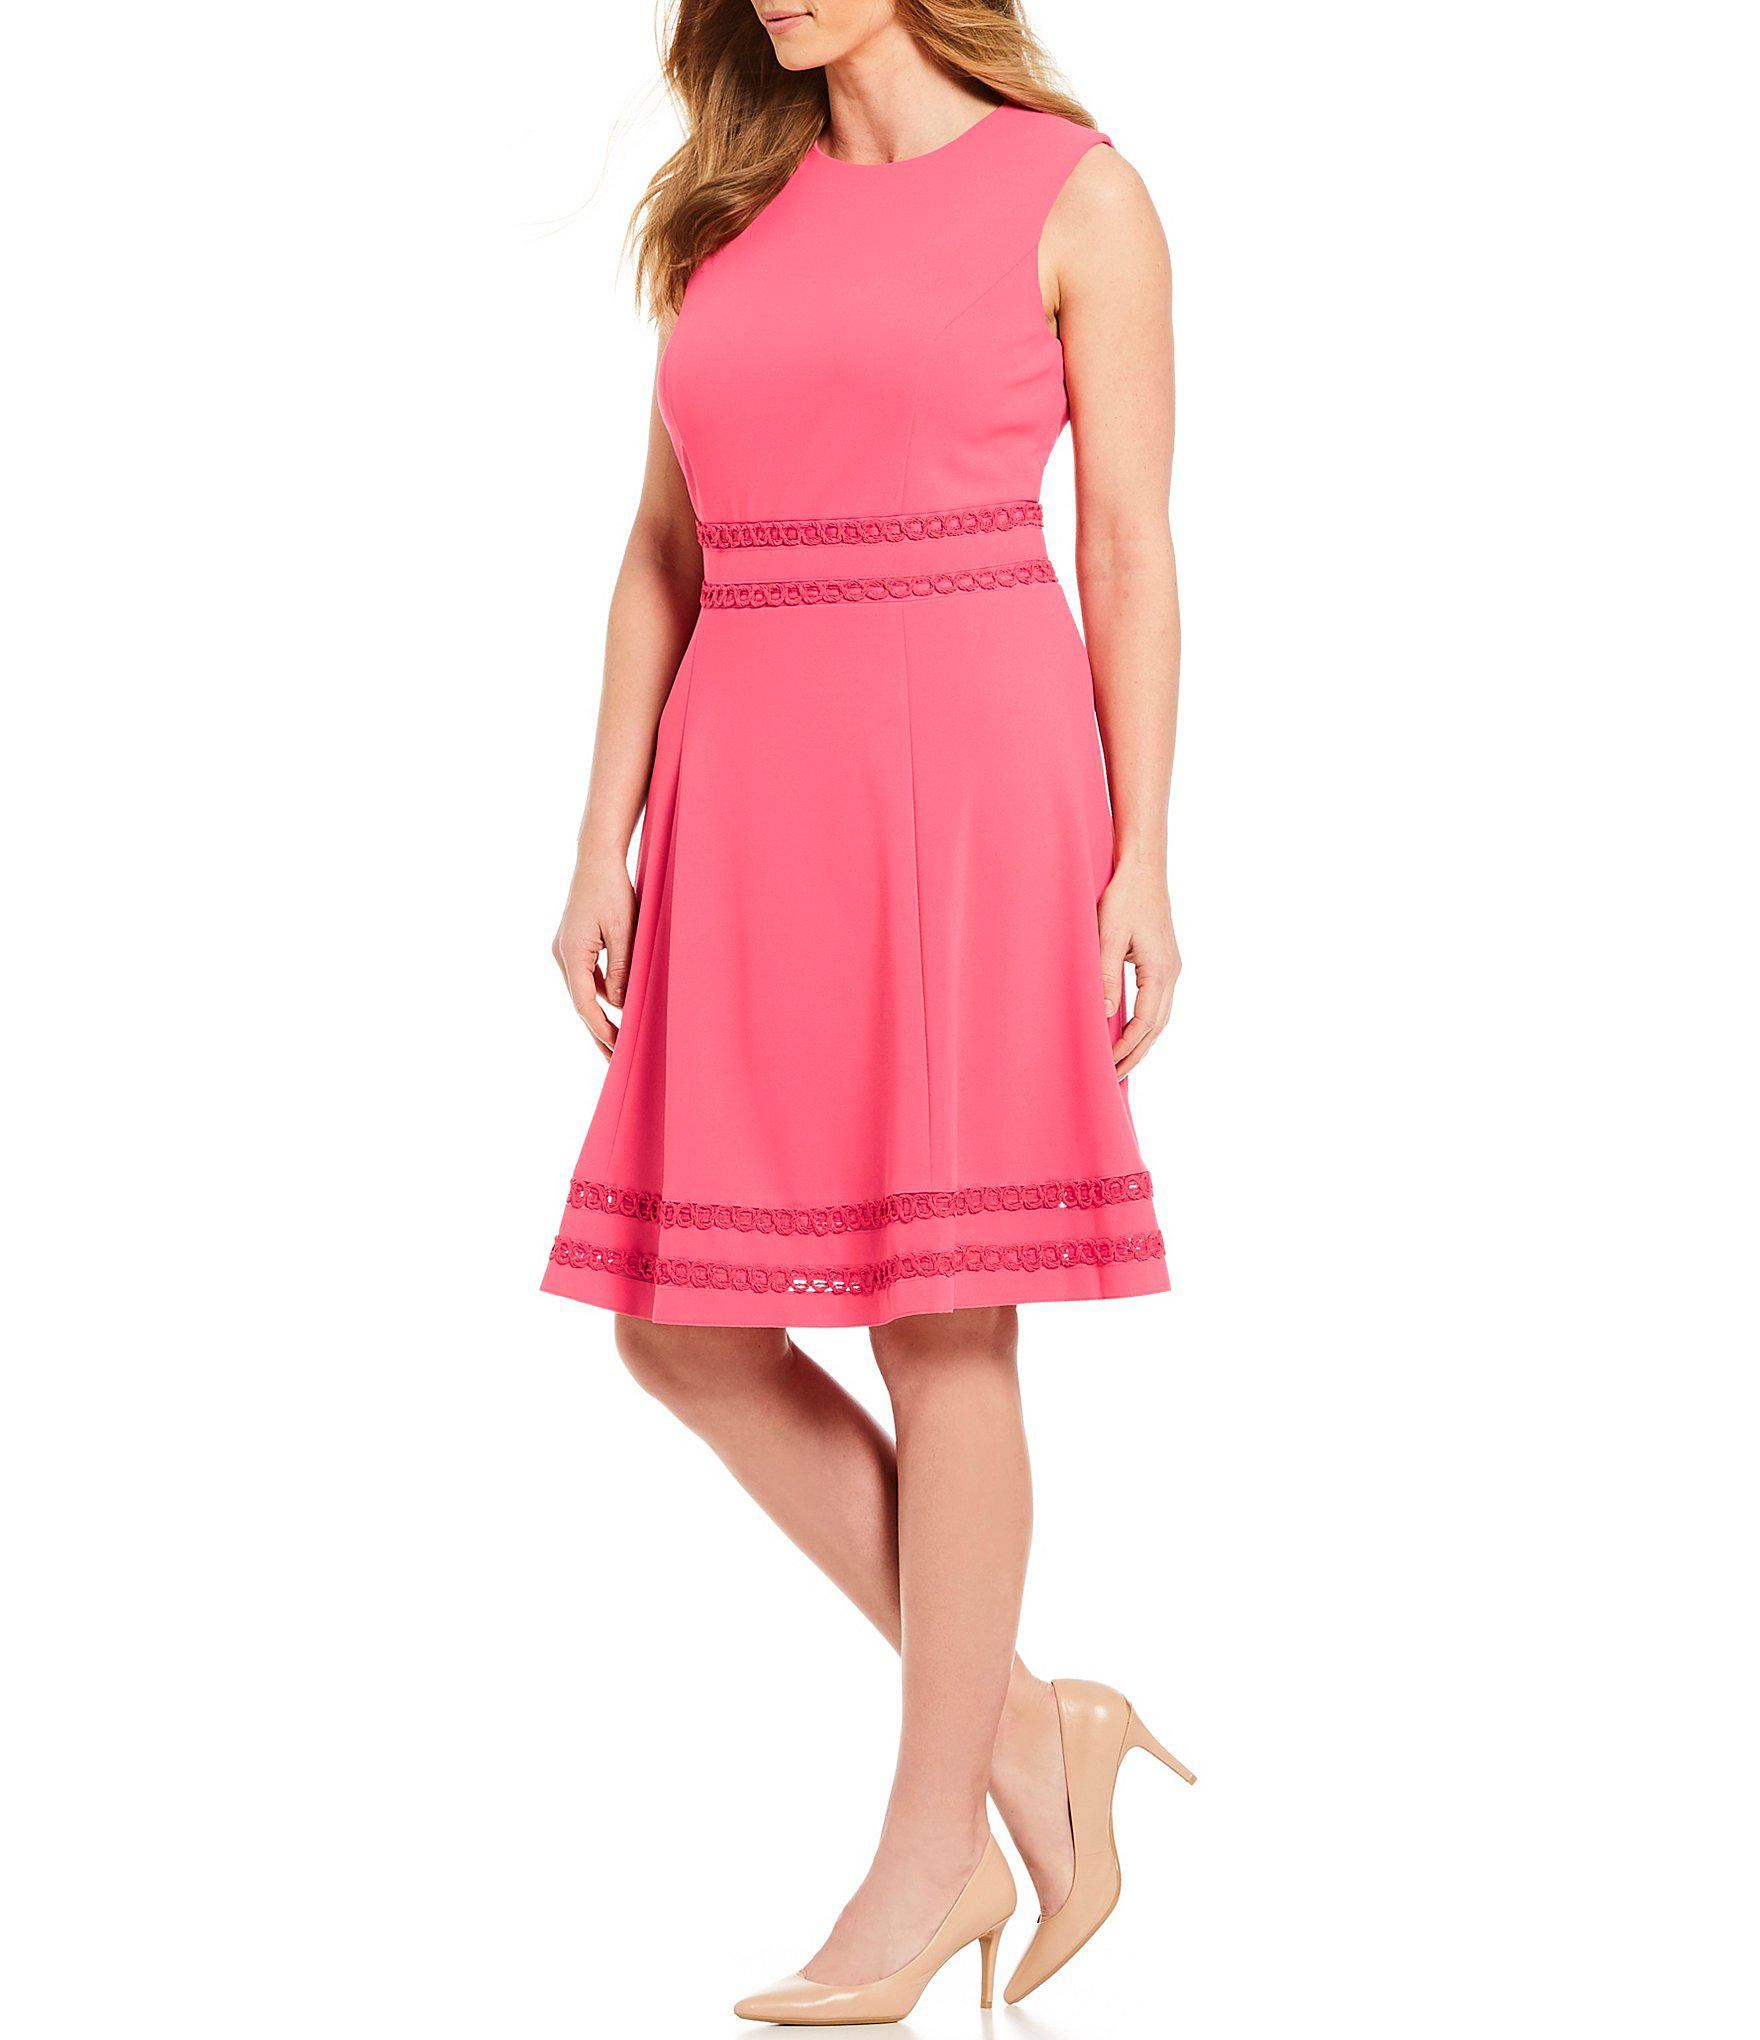 cc25f4de148 Calvin Klein Plus Size Lace Trim A-line Dress in Pink - Lyst